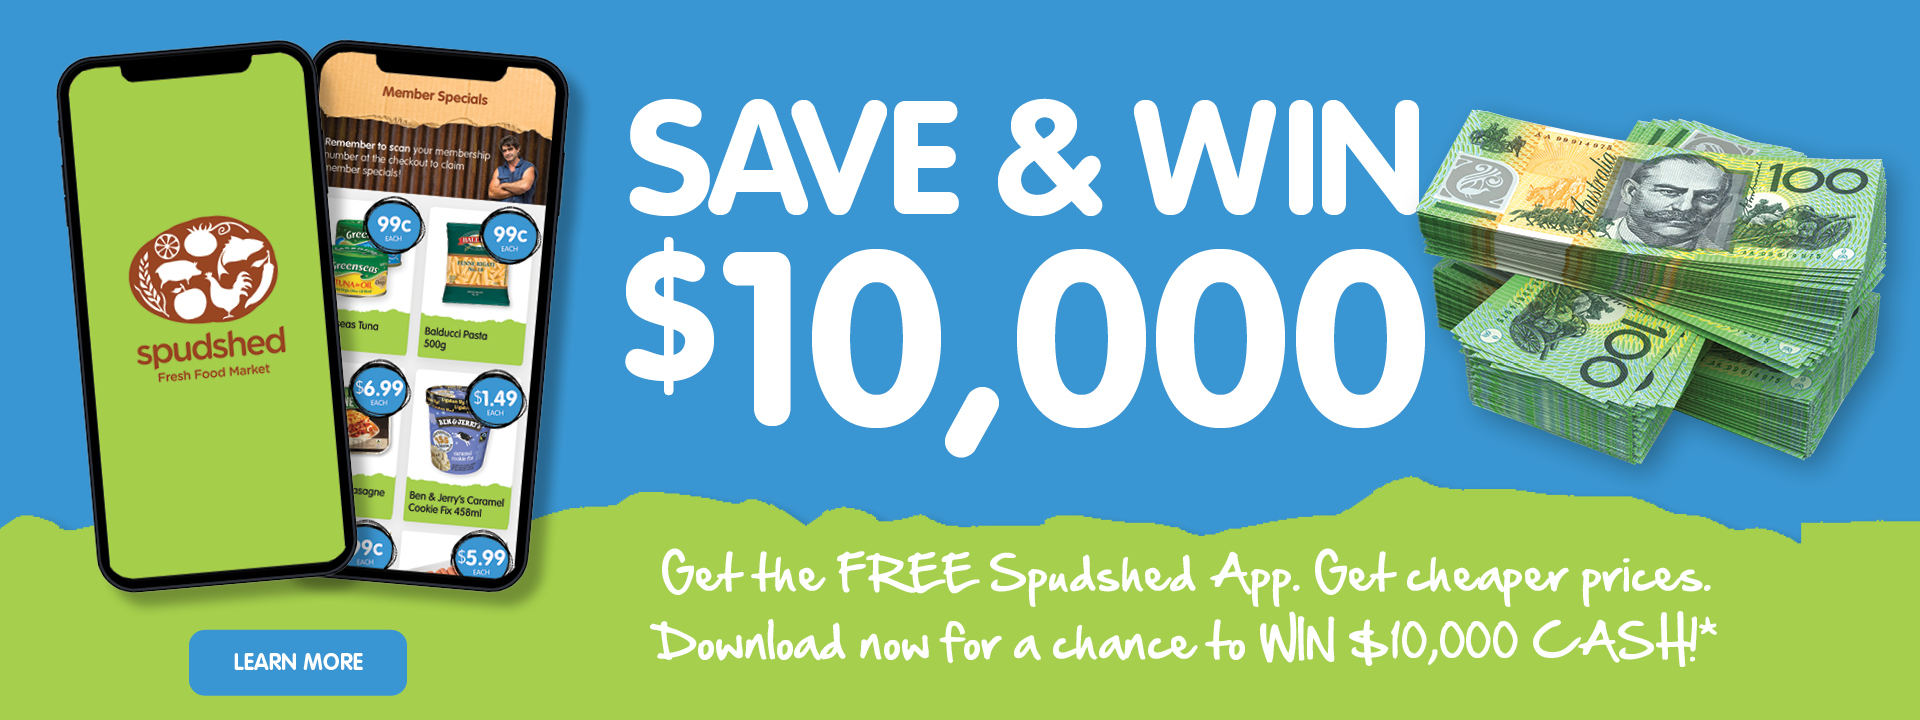 Get the Free Spudshed App and Win